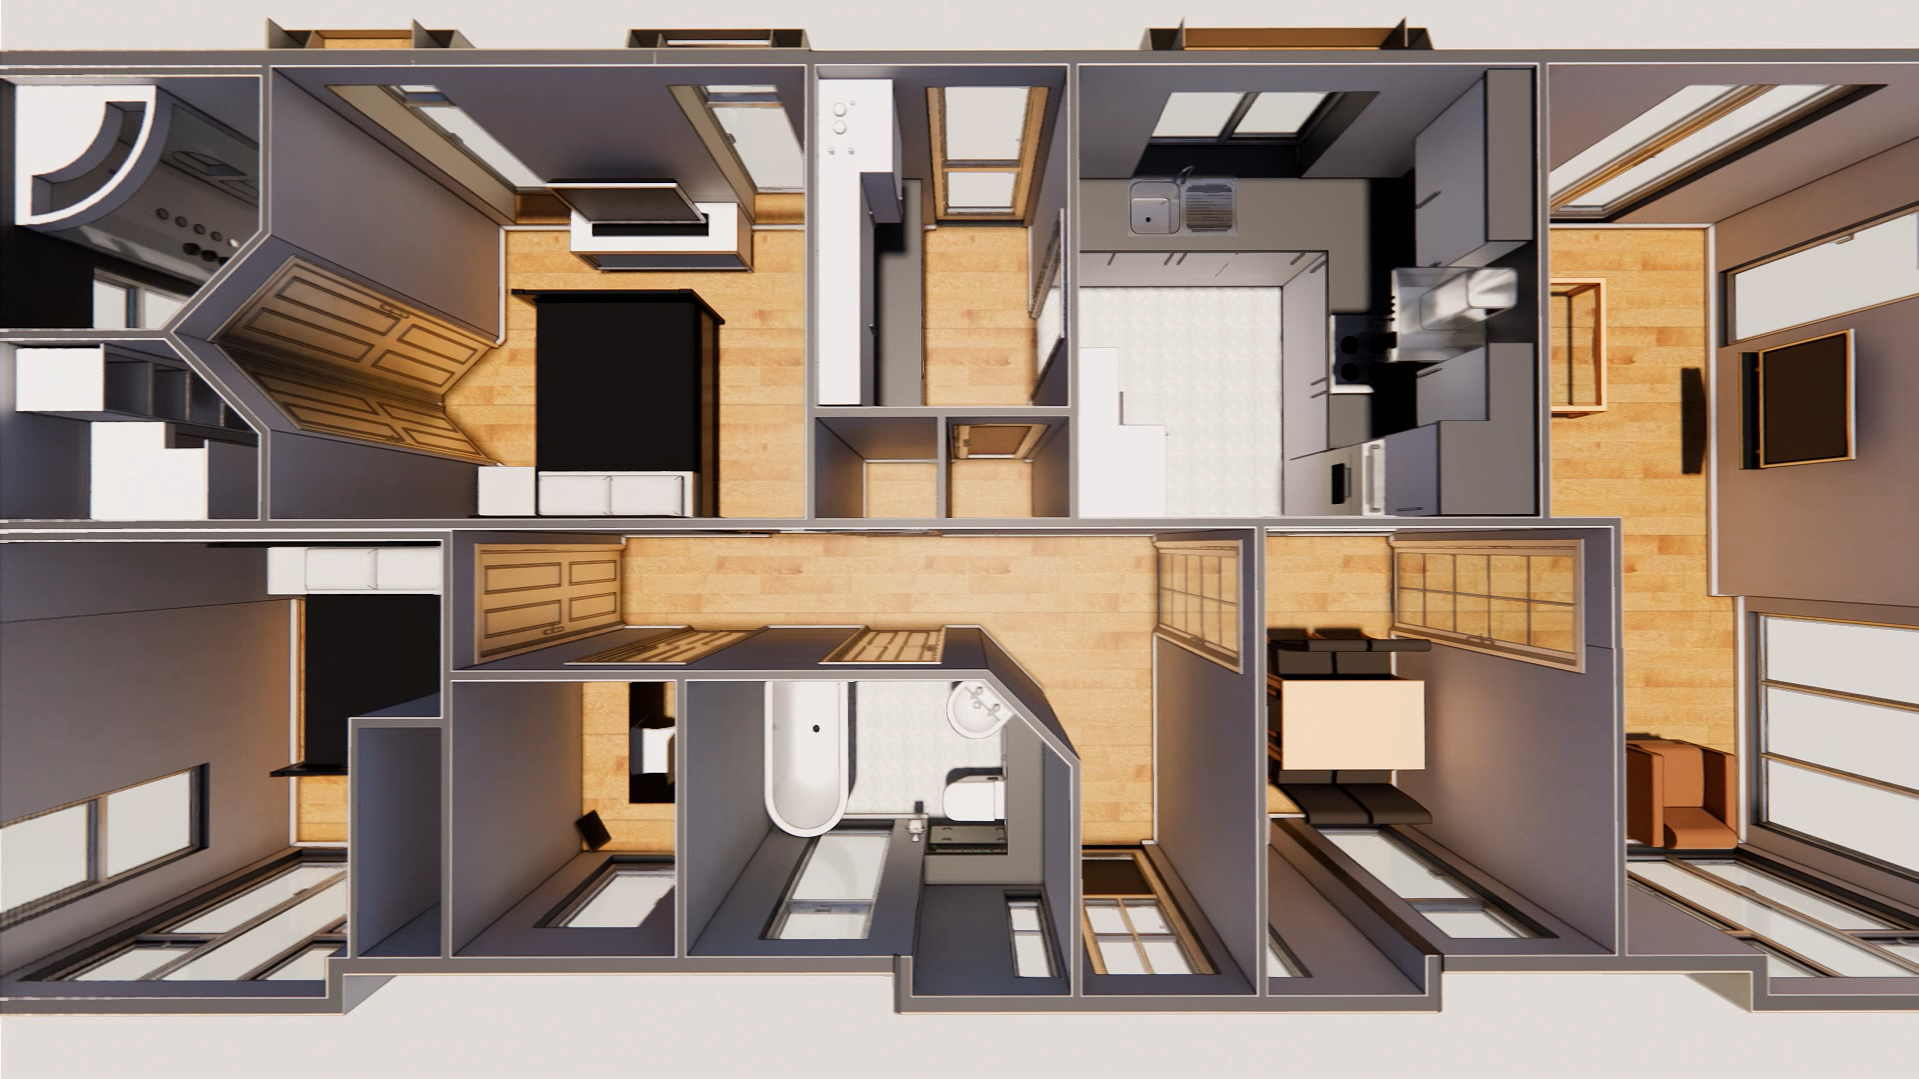 Top view, Prefabricated Park Home, Stately Albion